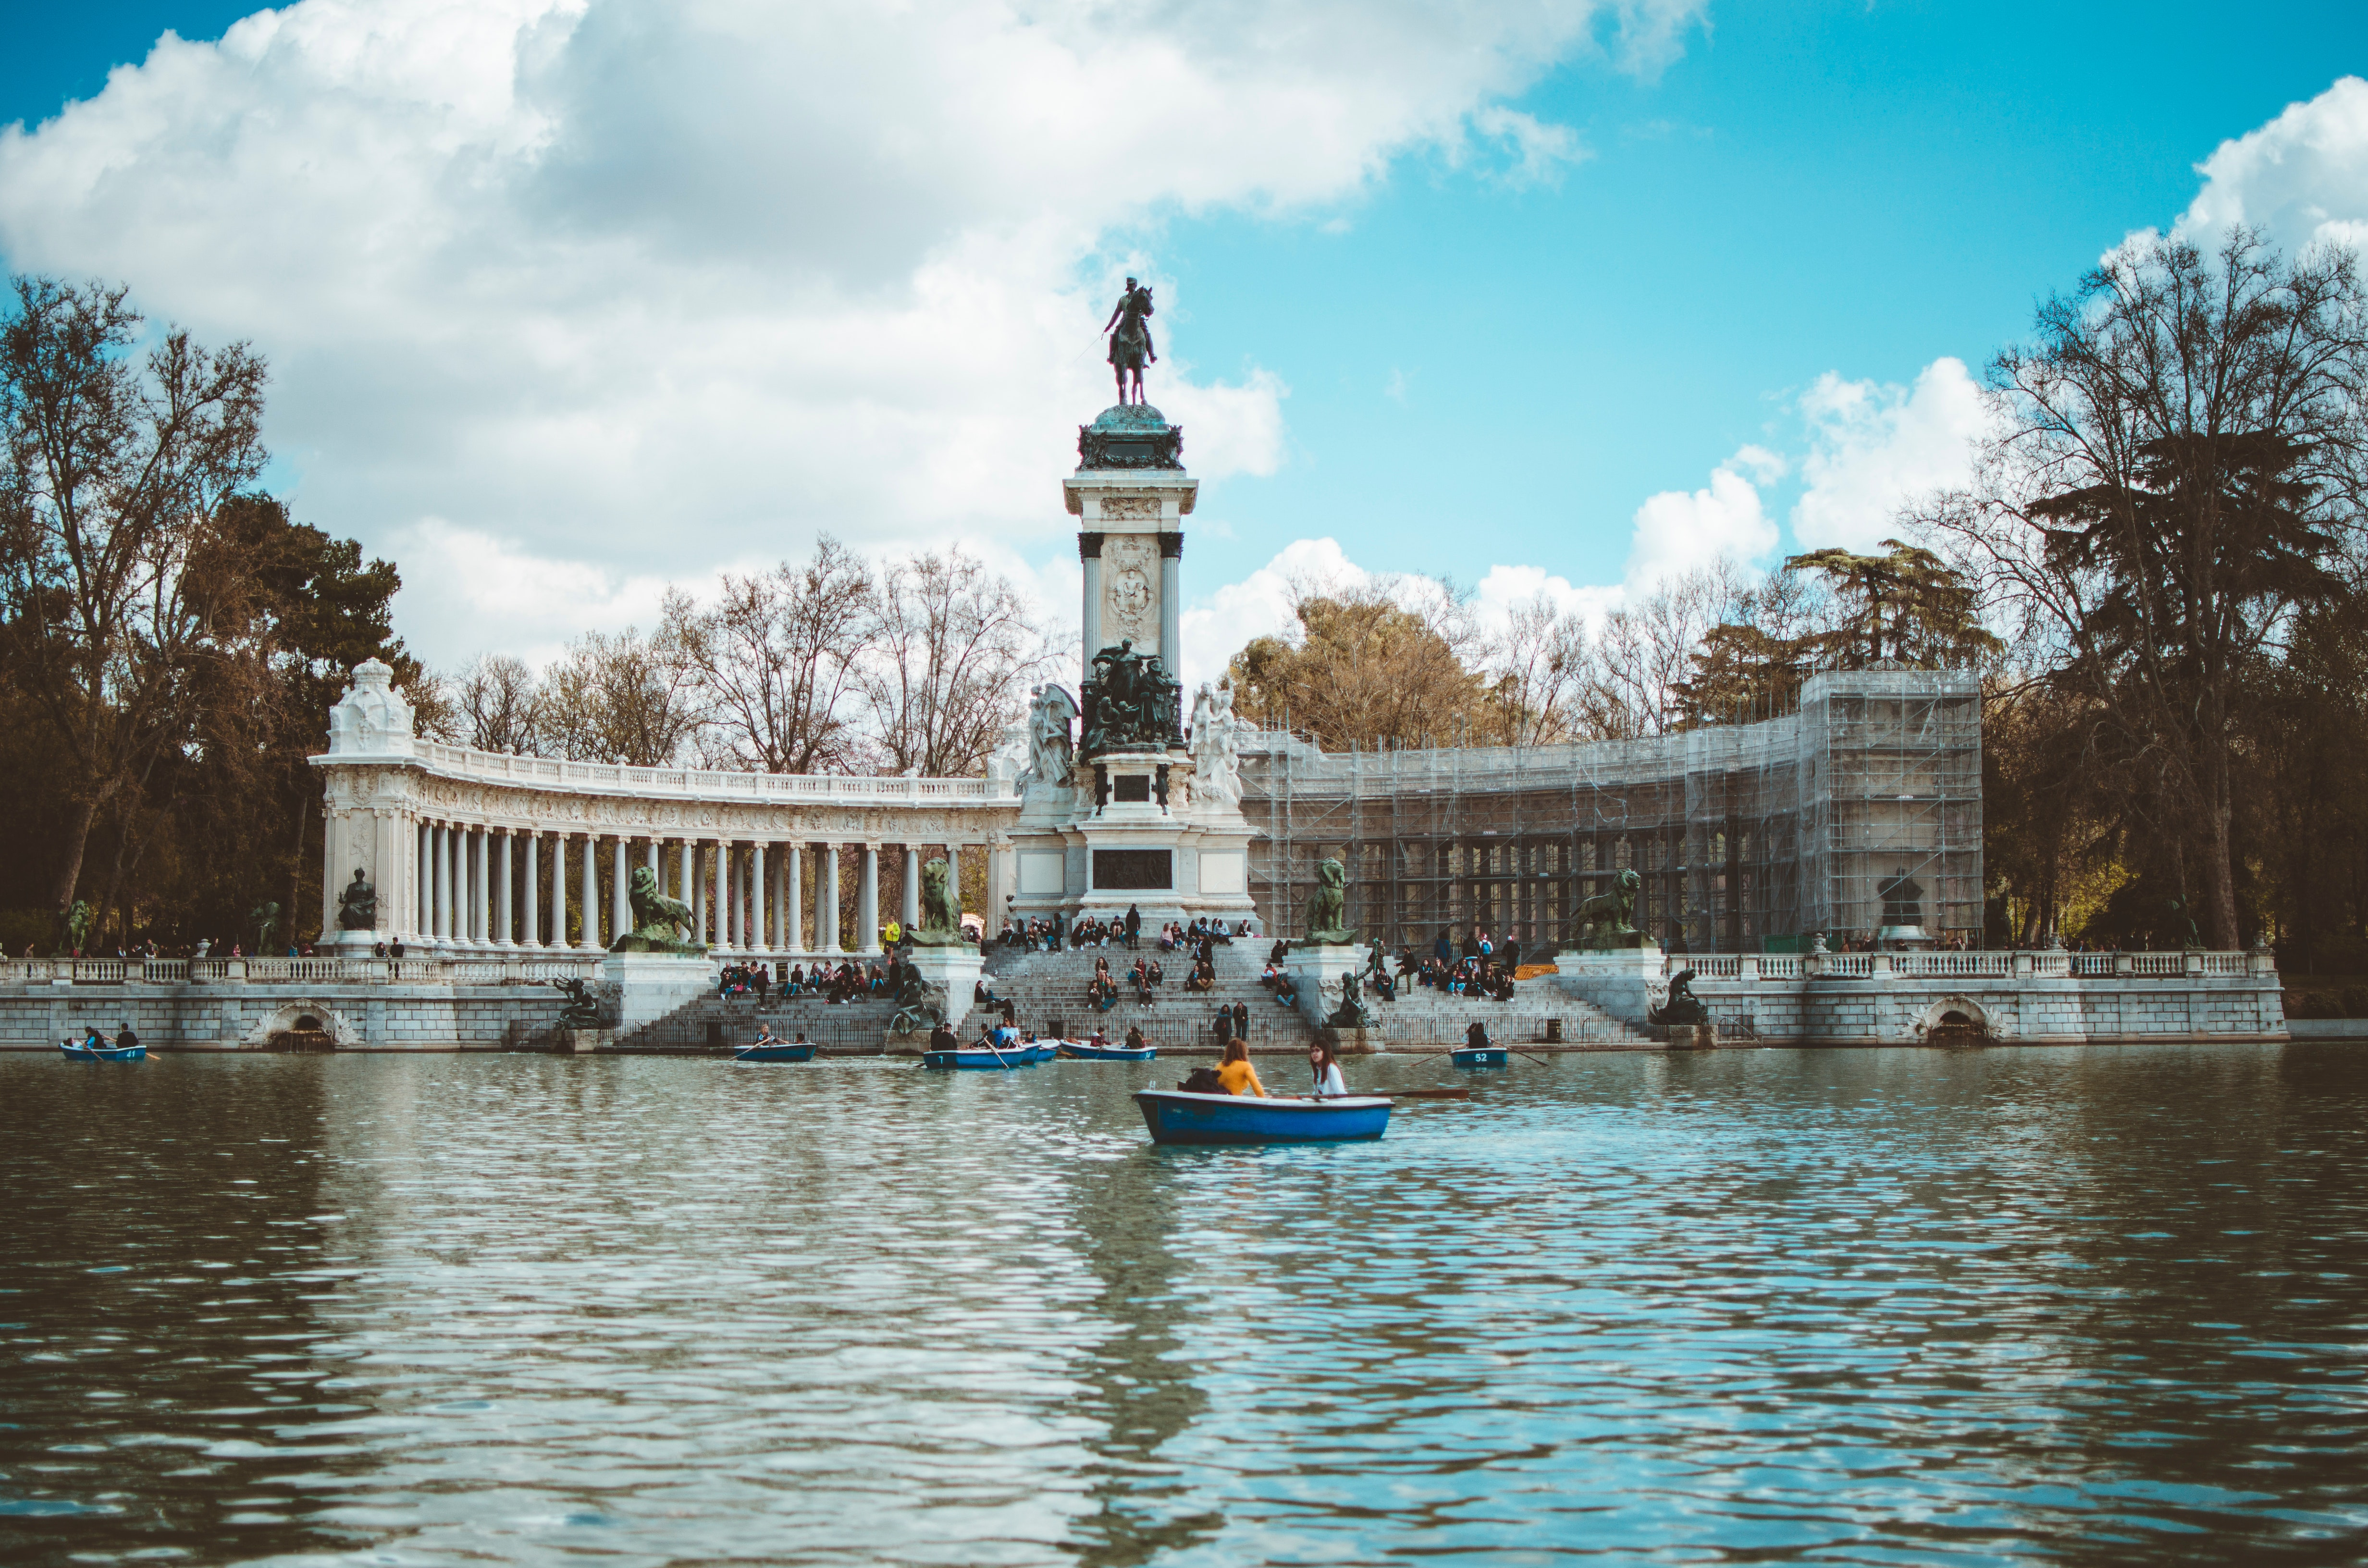 Boat in Water and Building With Statue, Architecture, Sky, Watercraft, Water, HQ Photo